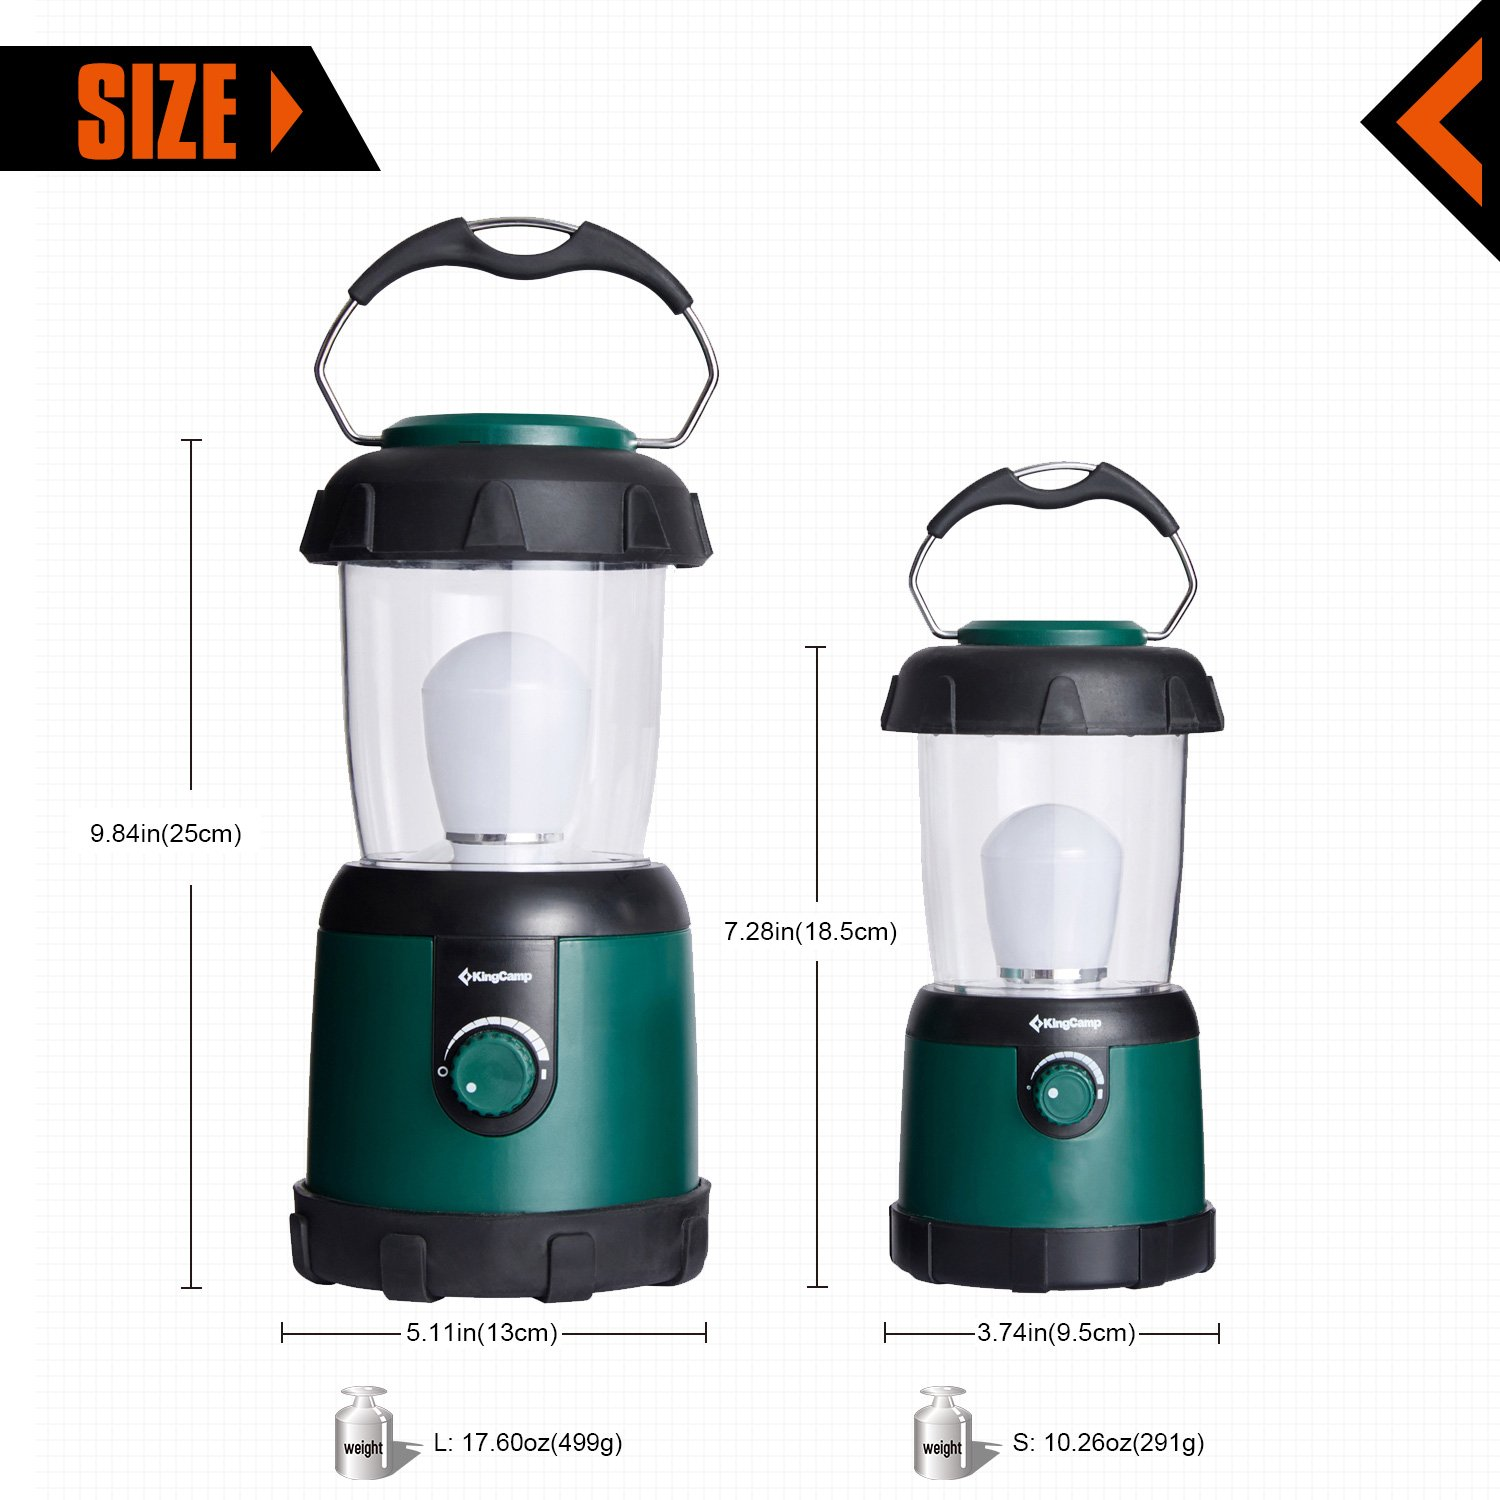 KingCamp Portable Light Outdoor Lantern Emergency Lighting for Camping, Hiking, Traveling, Emergencies, Hurricanes, Outages (S Size)